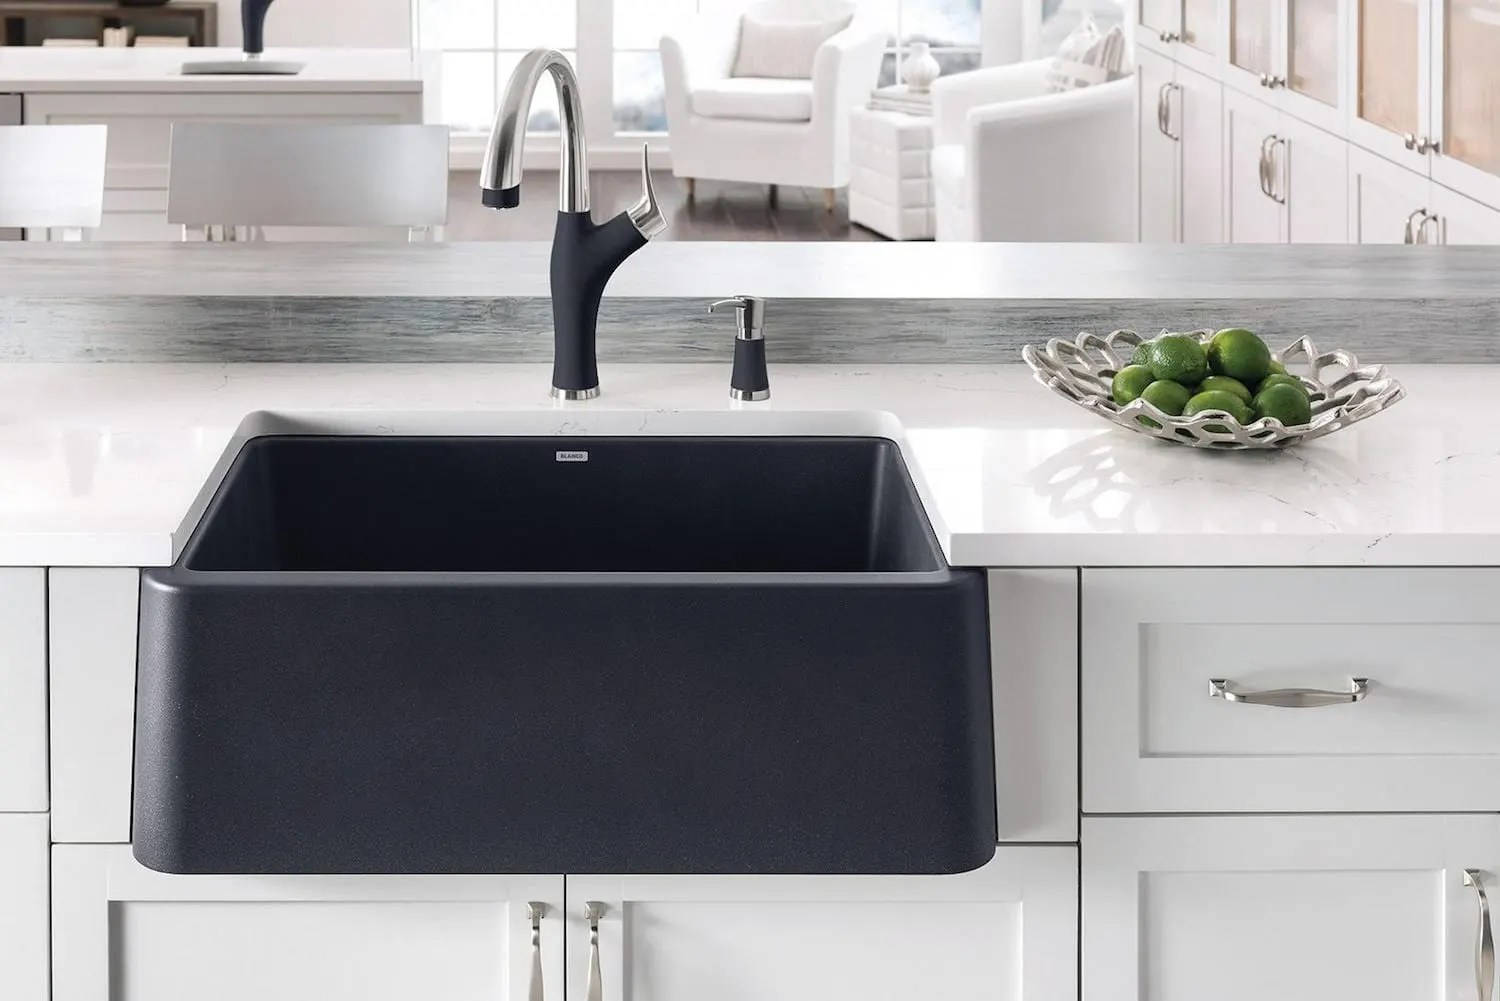 Stone Farmhouse Sink Lowest Price Granite Sinks Everything You Need To Know Qualitybath Discover